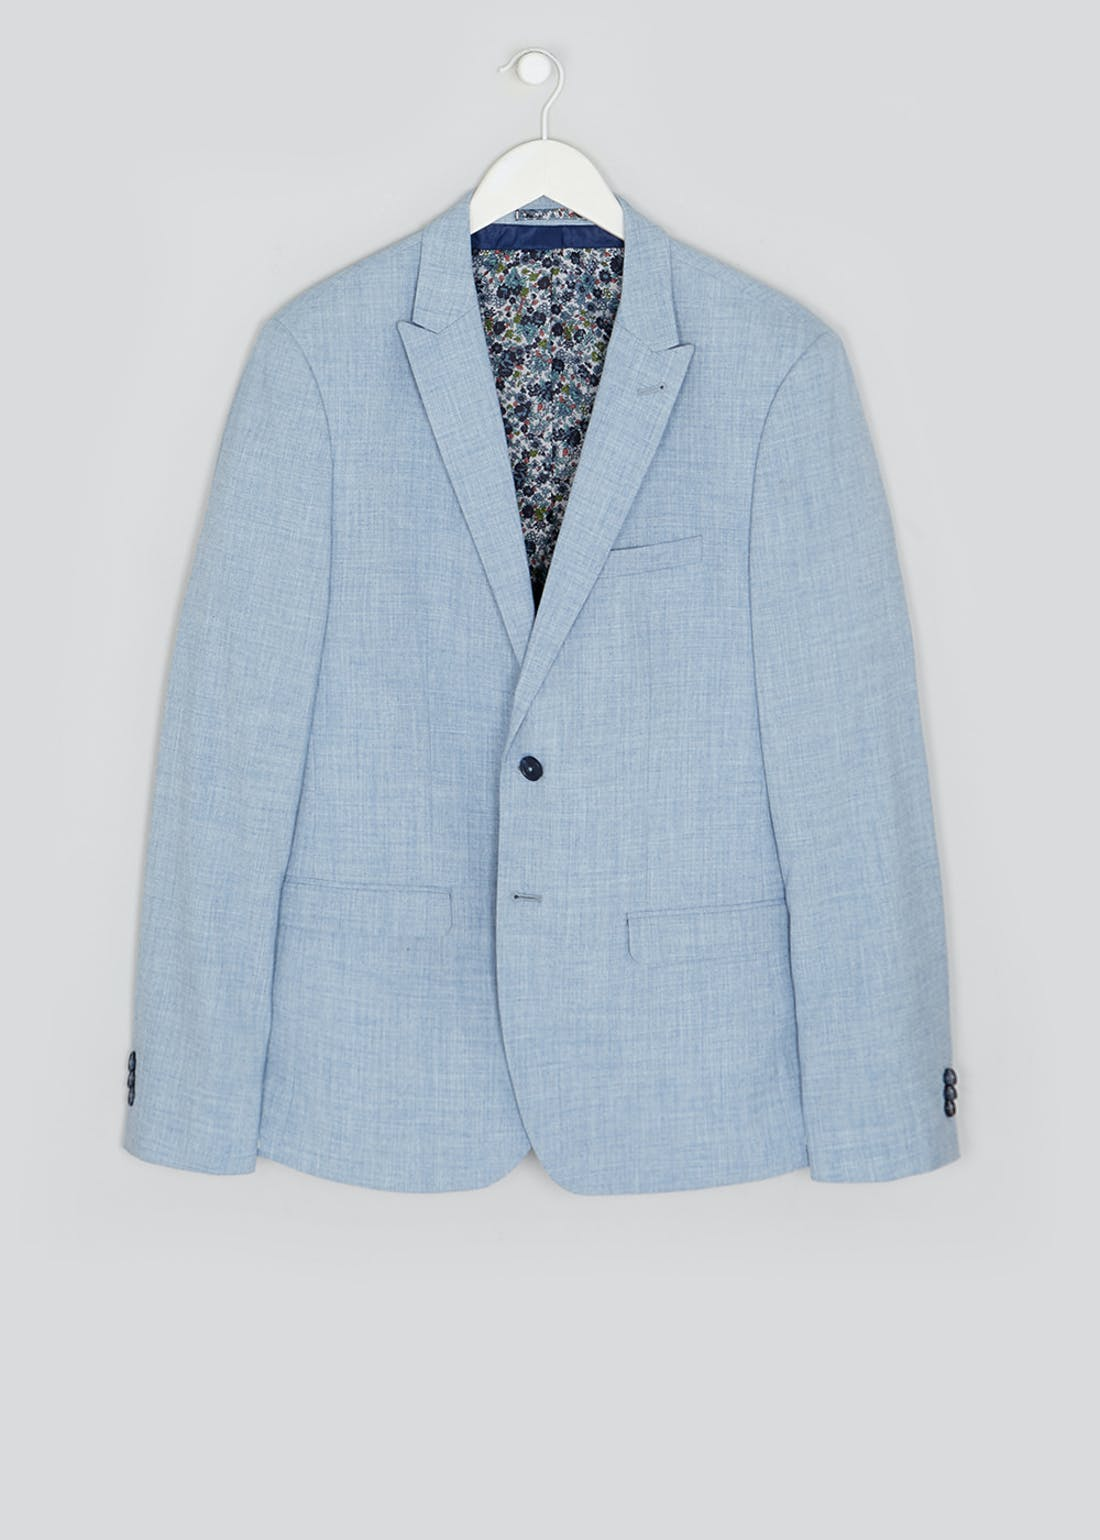 Taylor & Wright Pearson  Skinny Fit Suit Jacket